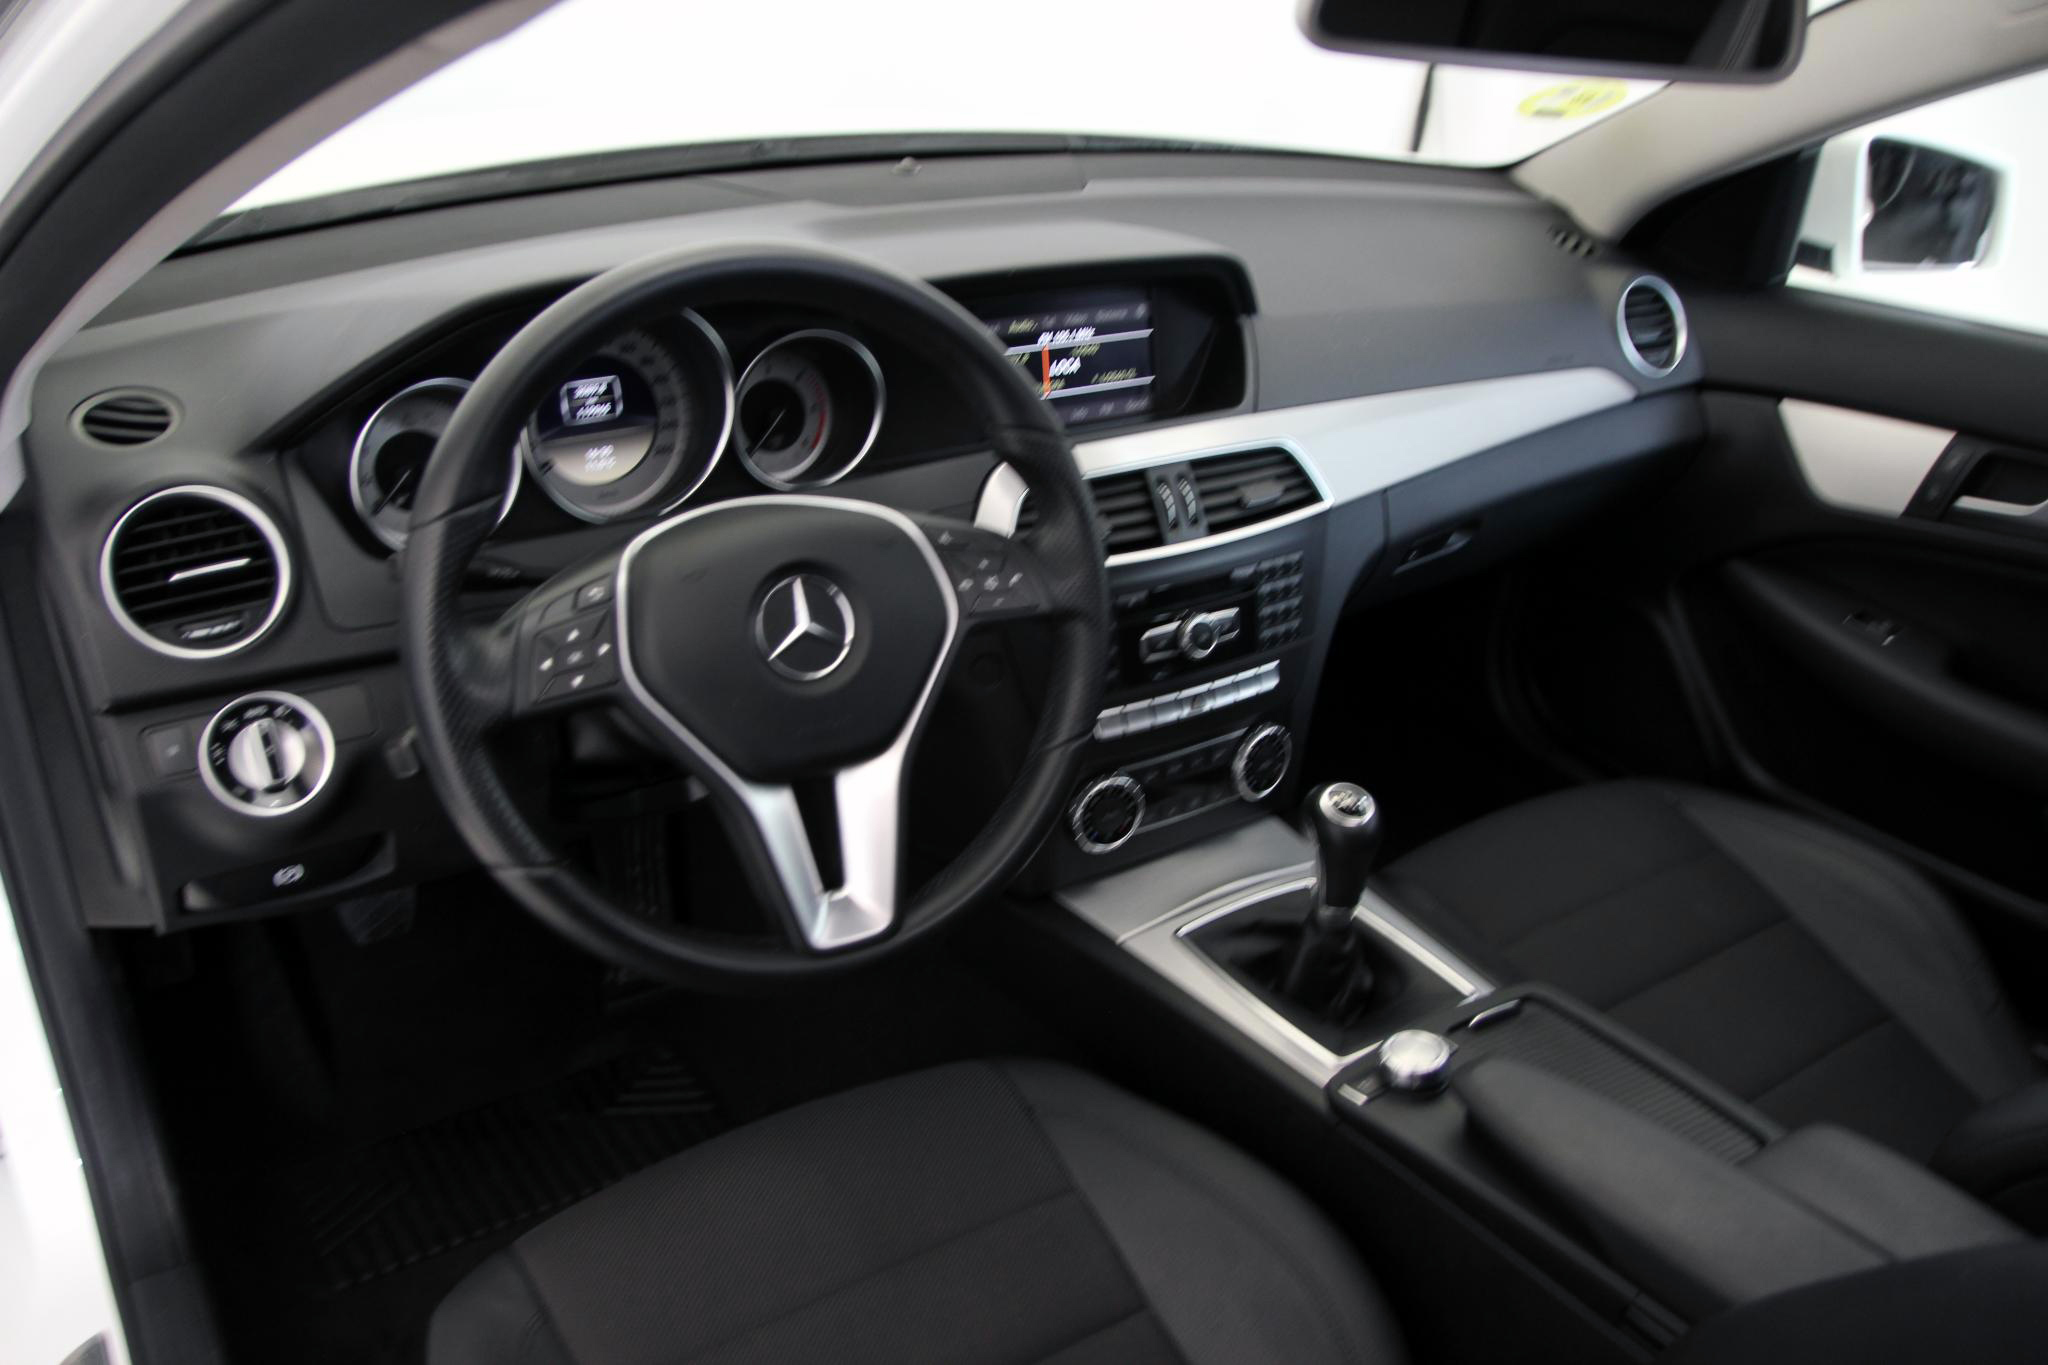 Mercedes-Benz Clase C CLASE C COUPE 220 CDI BLUE EFFICIENCY imagen 19